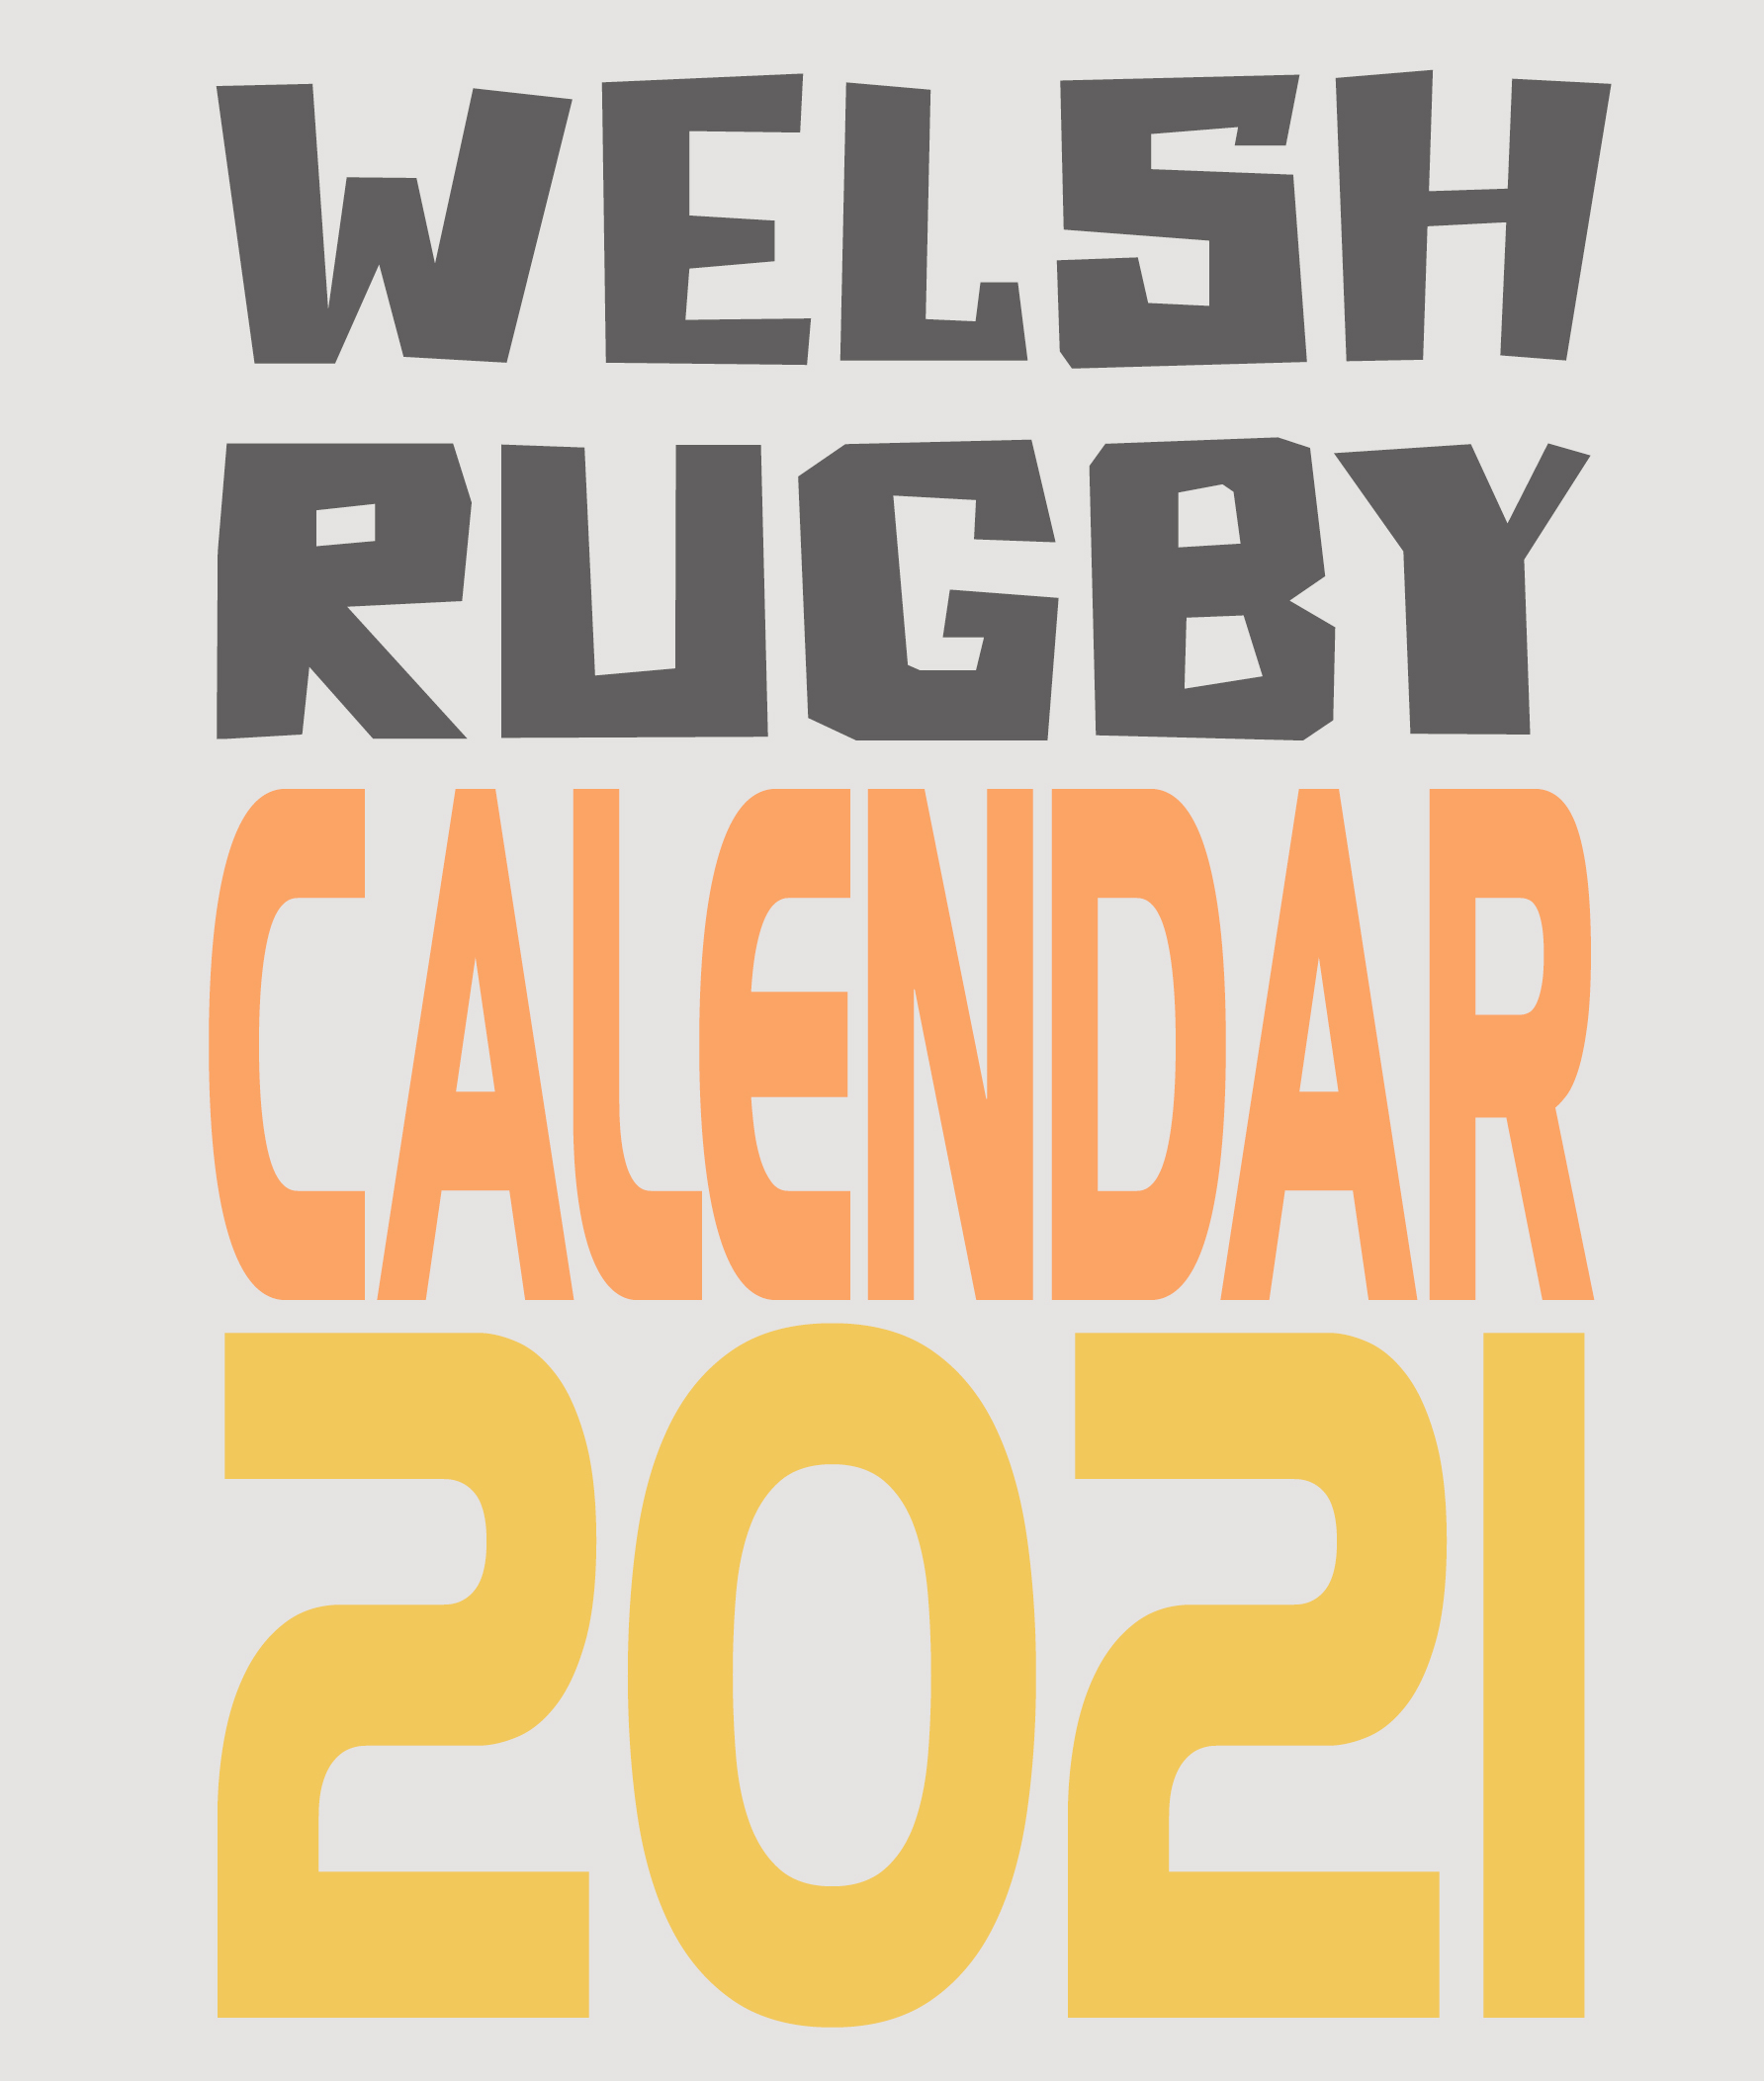 Ultimate Welsh Rugby Calendar